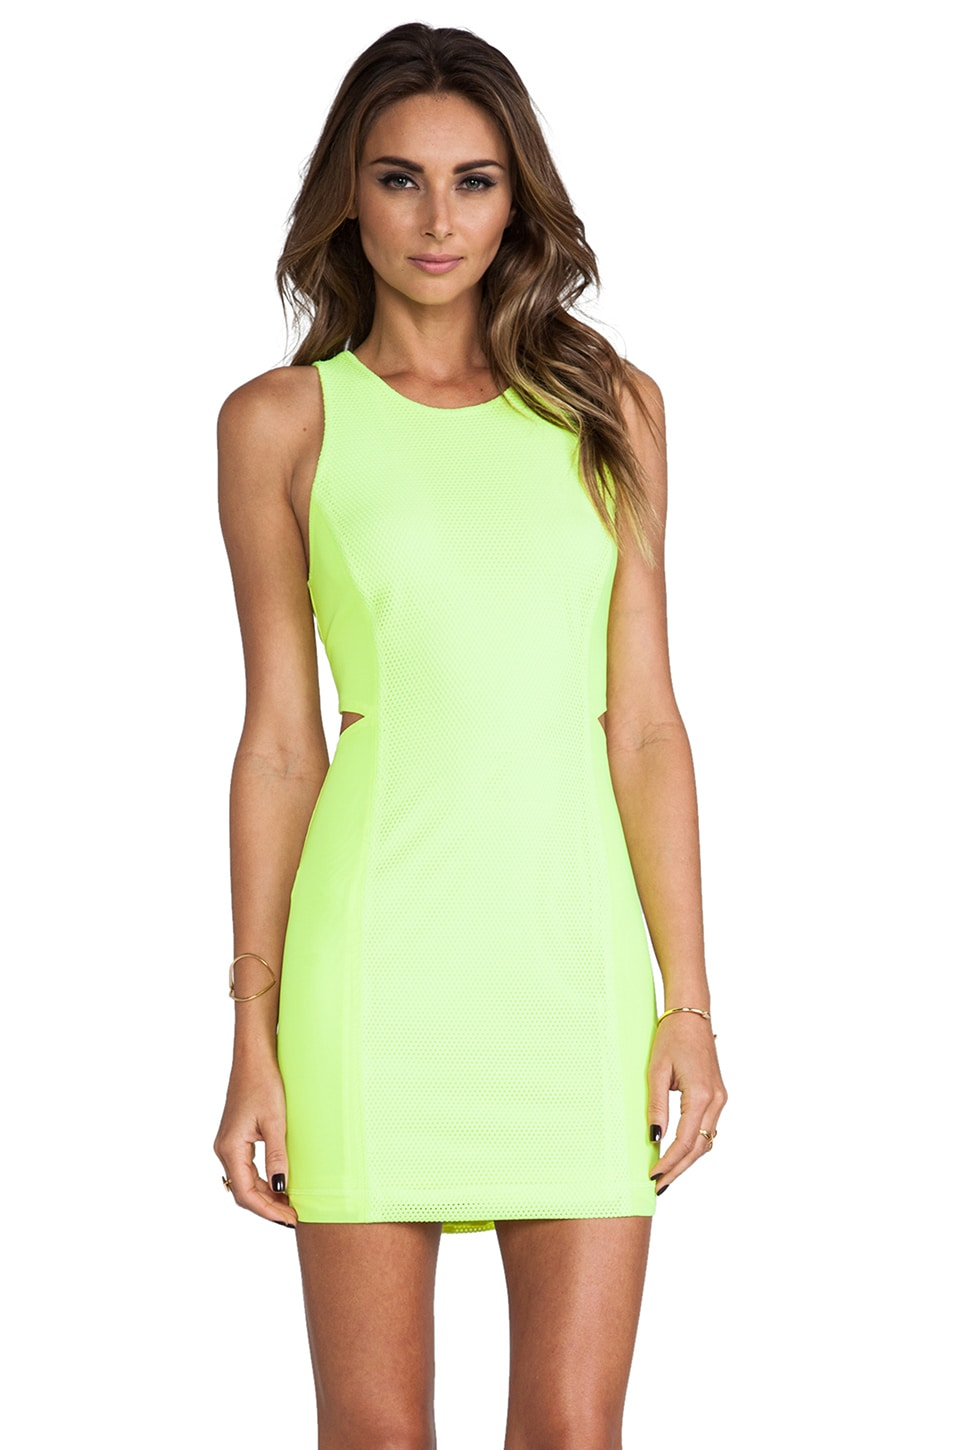 Dolce Vita Pernita Dress in Neon Yellow